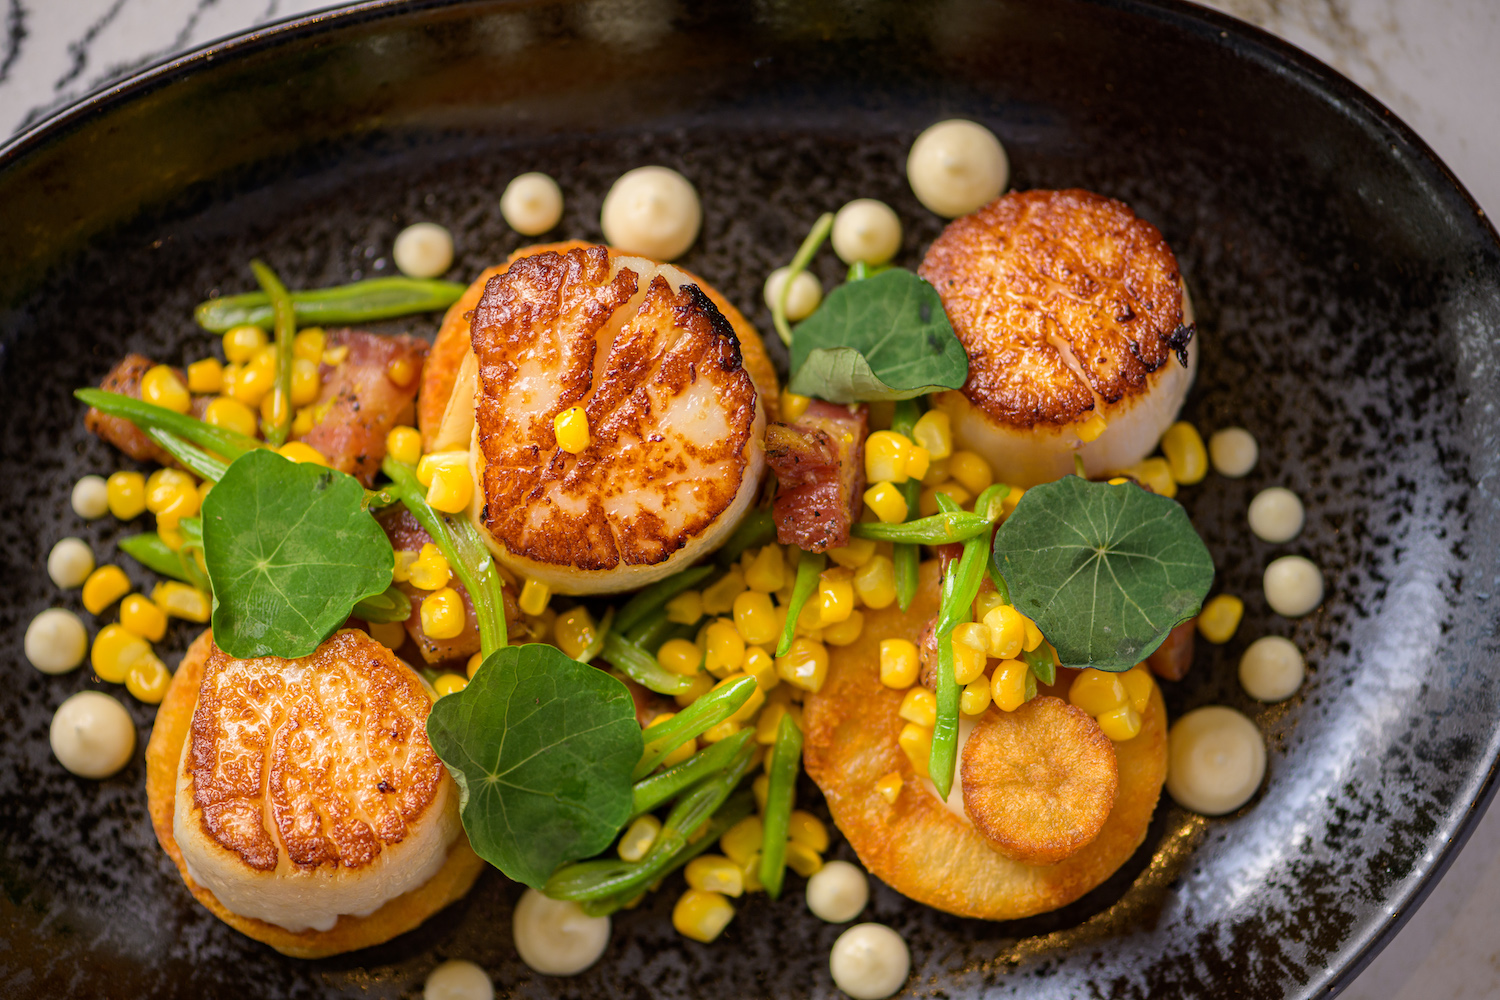 Seared scallops from Berkeley Boathouse. Photo: Chris Shmauch